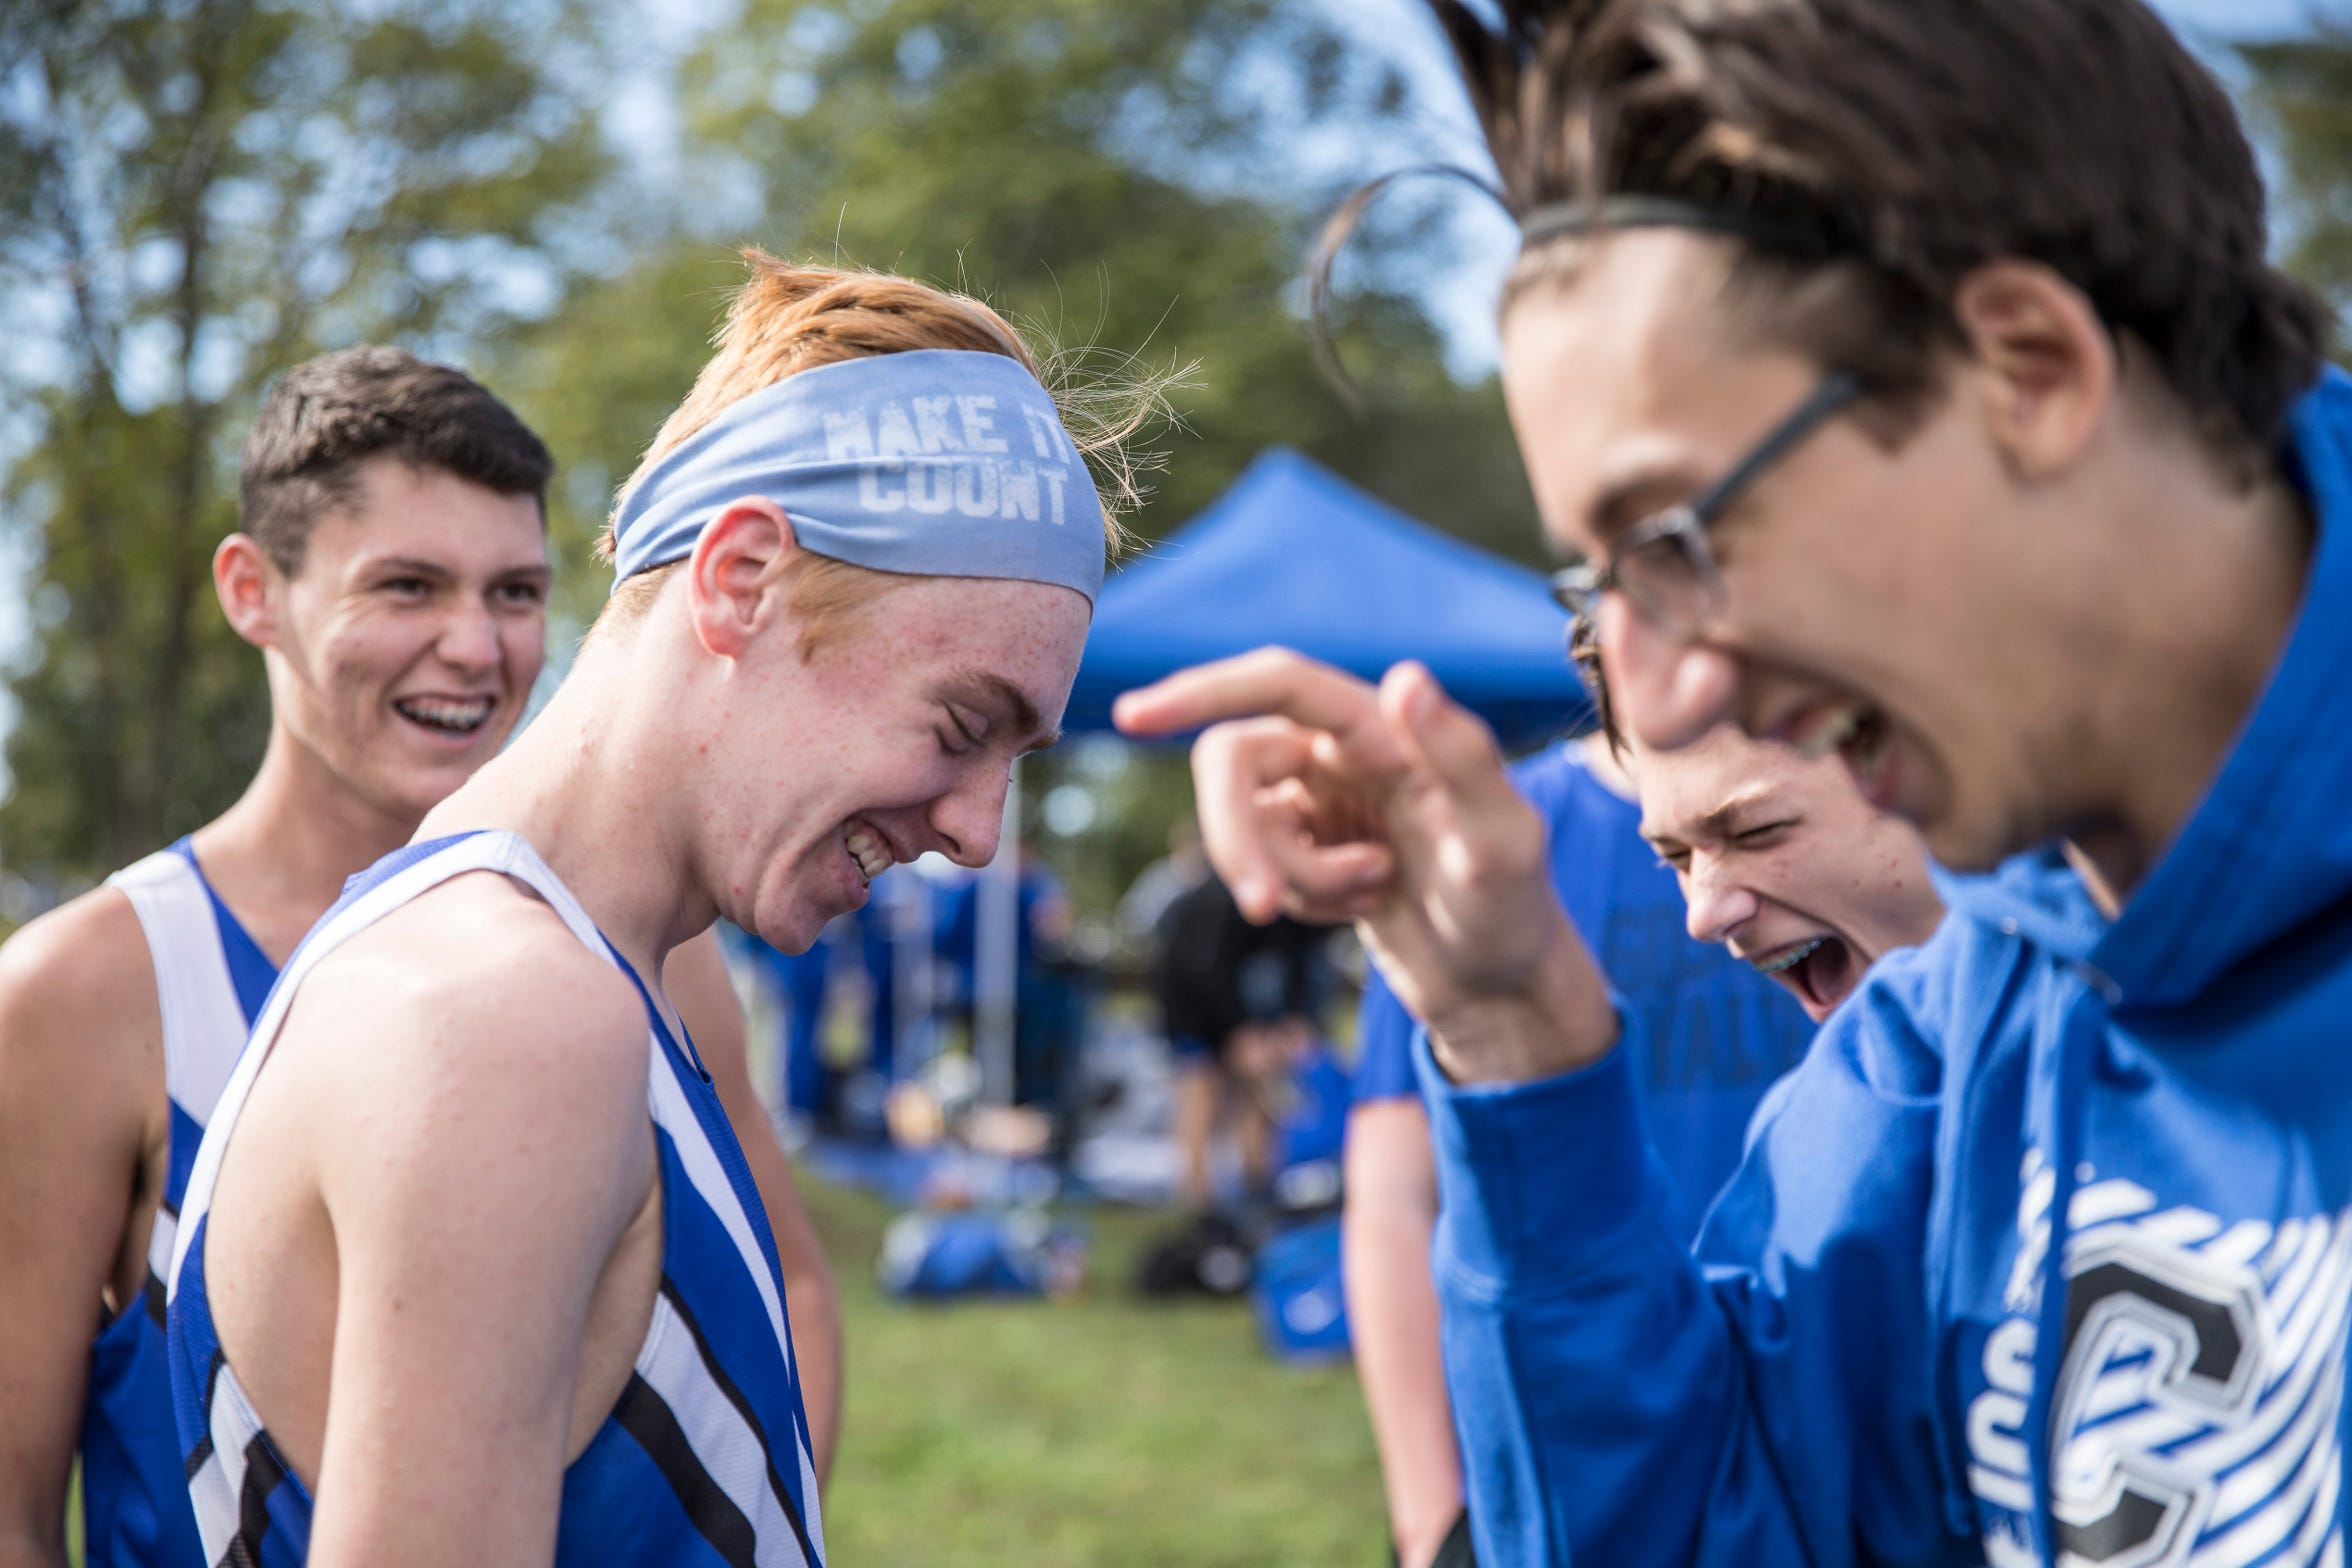 Andrew and his friends joke around to lessen the nervousness before the Frontier Athletic Conference cross country-race outside of Washington Courthouse, Ohio, on October 11, 2018.